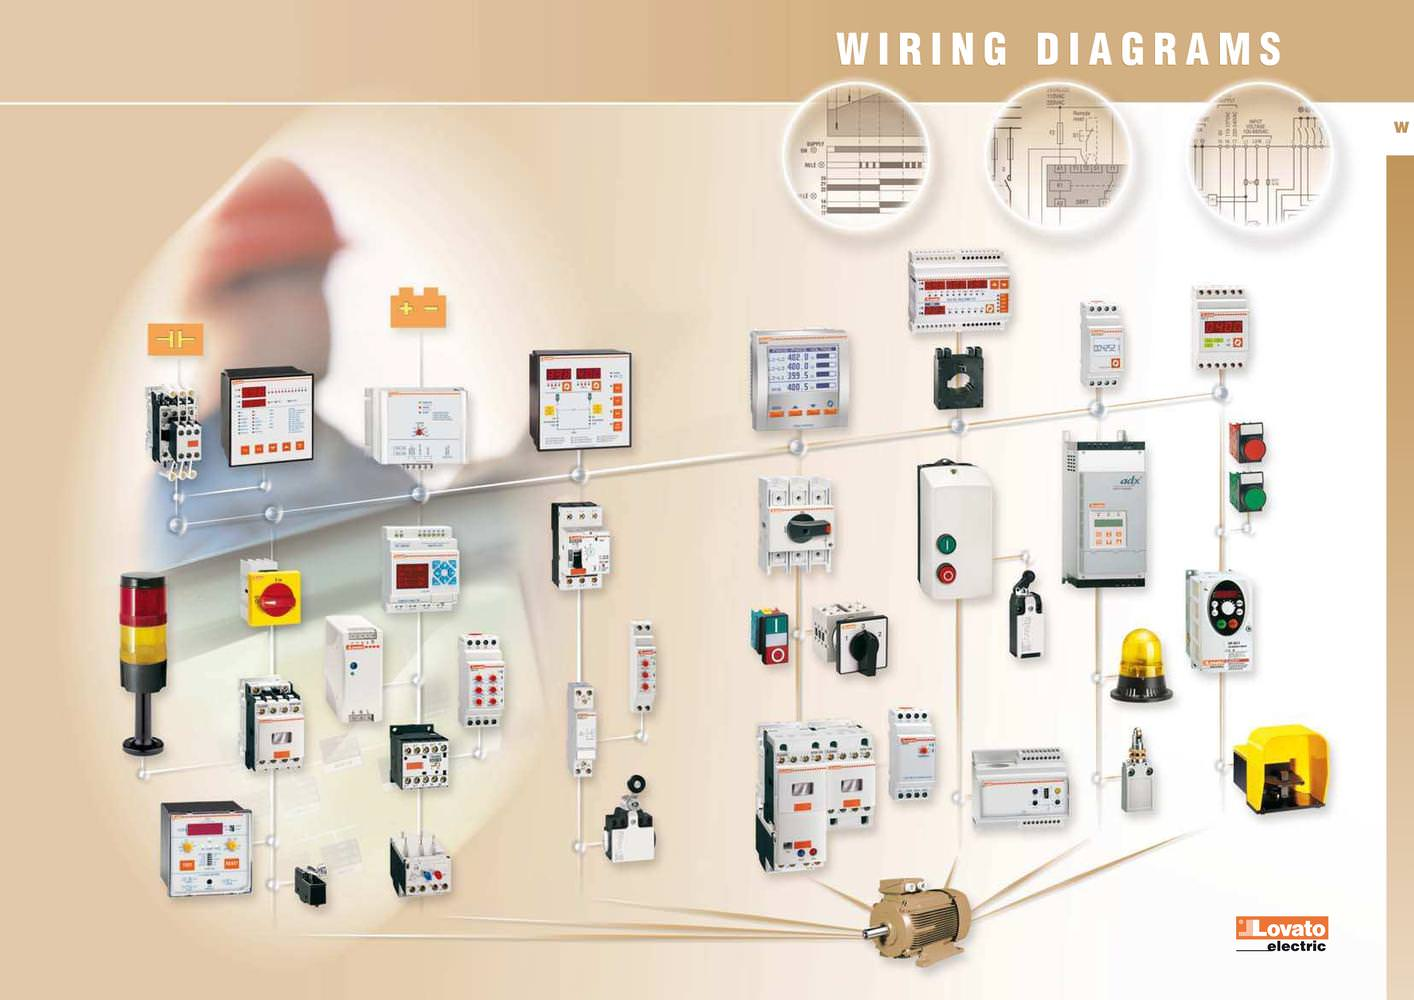 Wiring Diagrams Lovato Electric Pdf Catalogue Technical Electrical Fuse Panel Diagram Of Pole 3 1 39 Pages